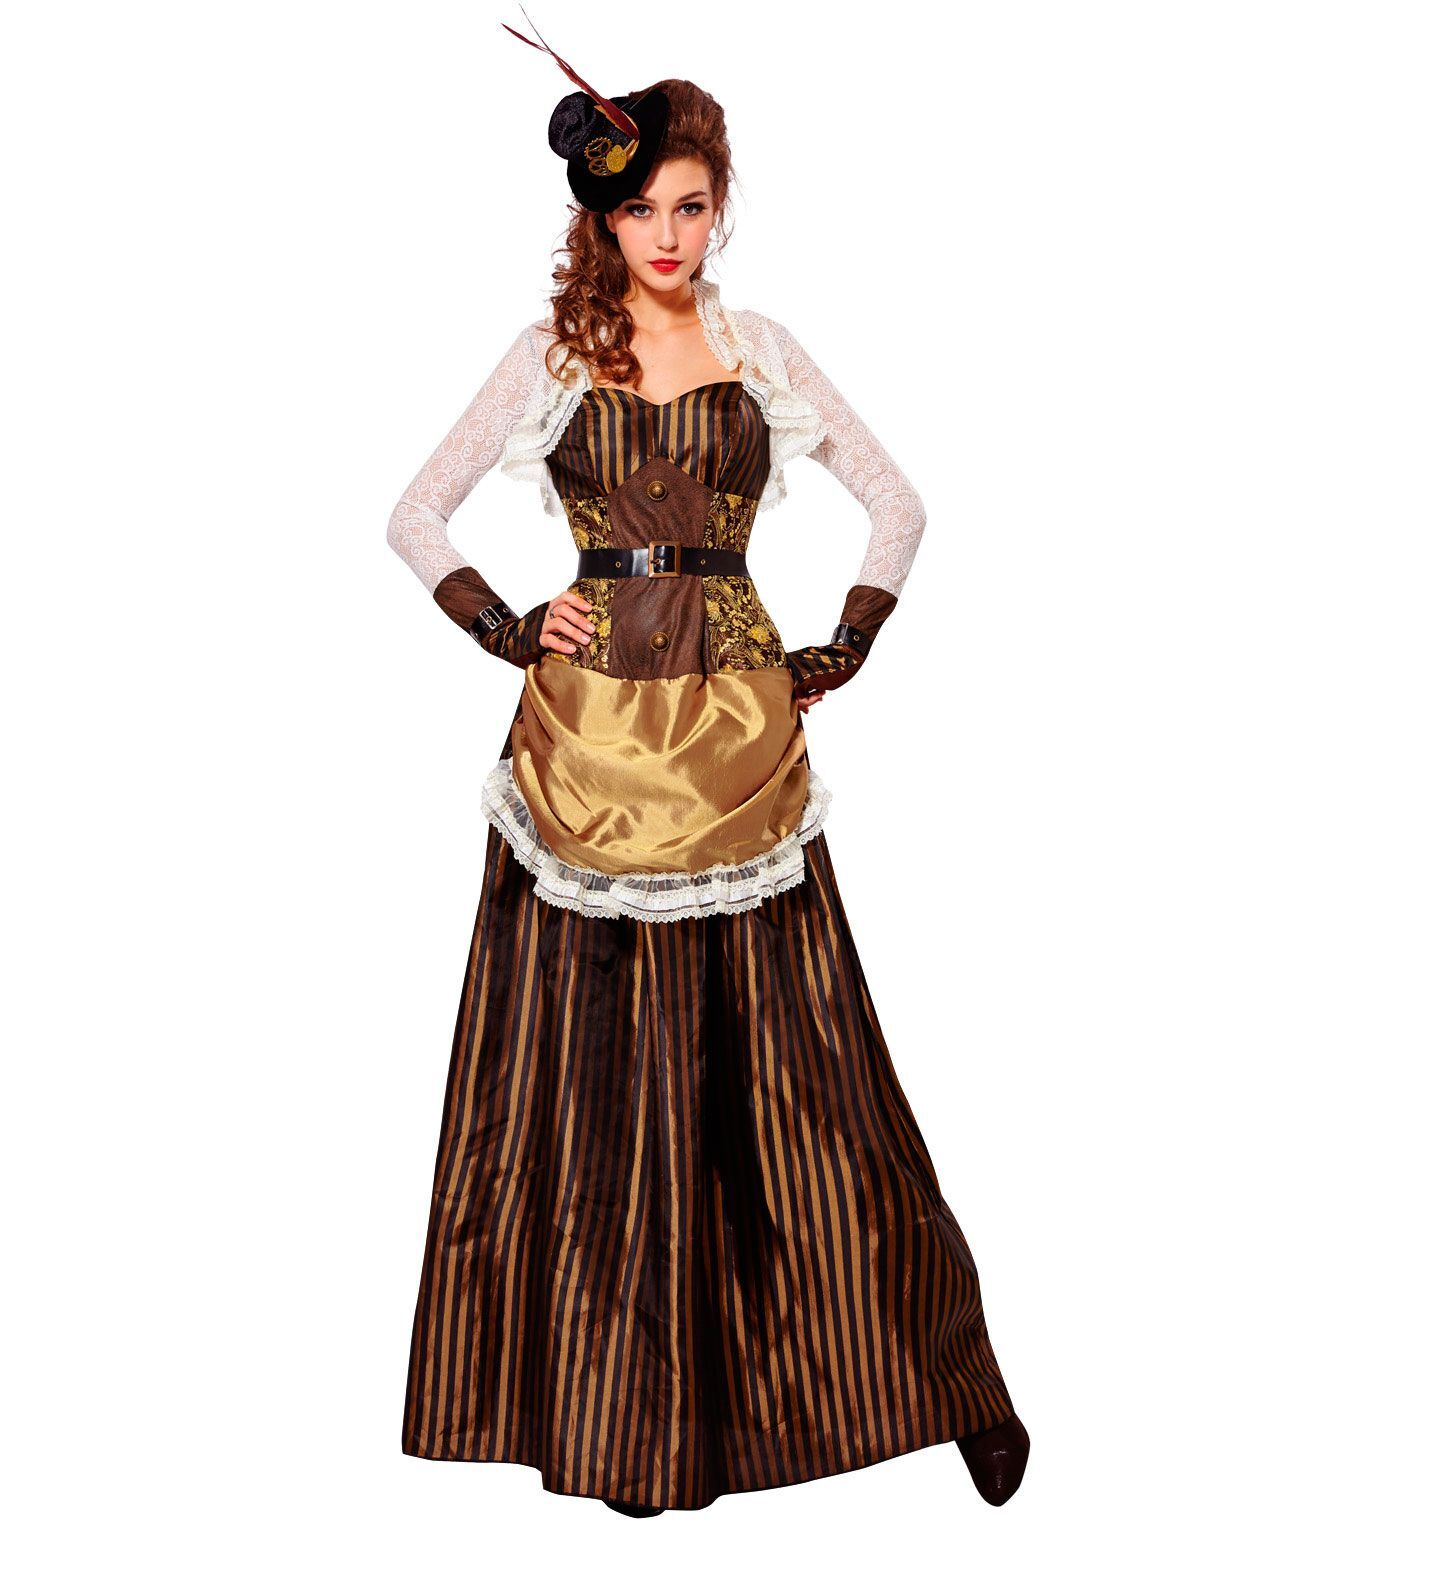 Fiction Steampunk jurk dame chique